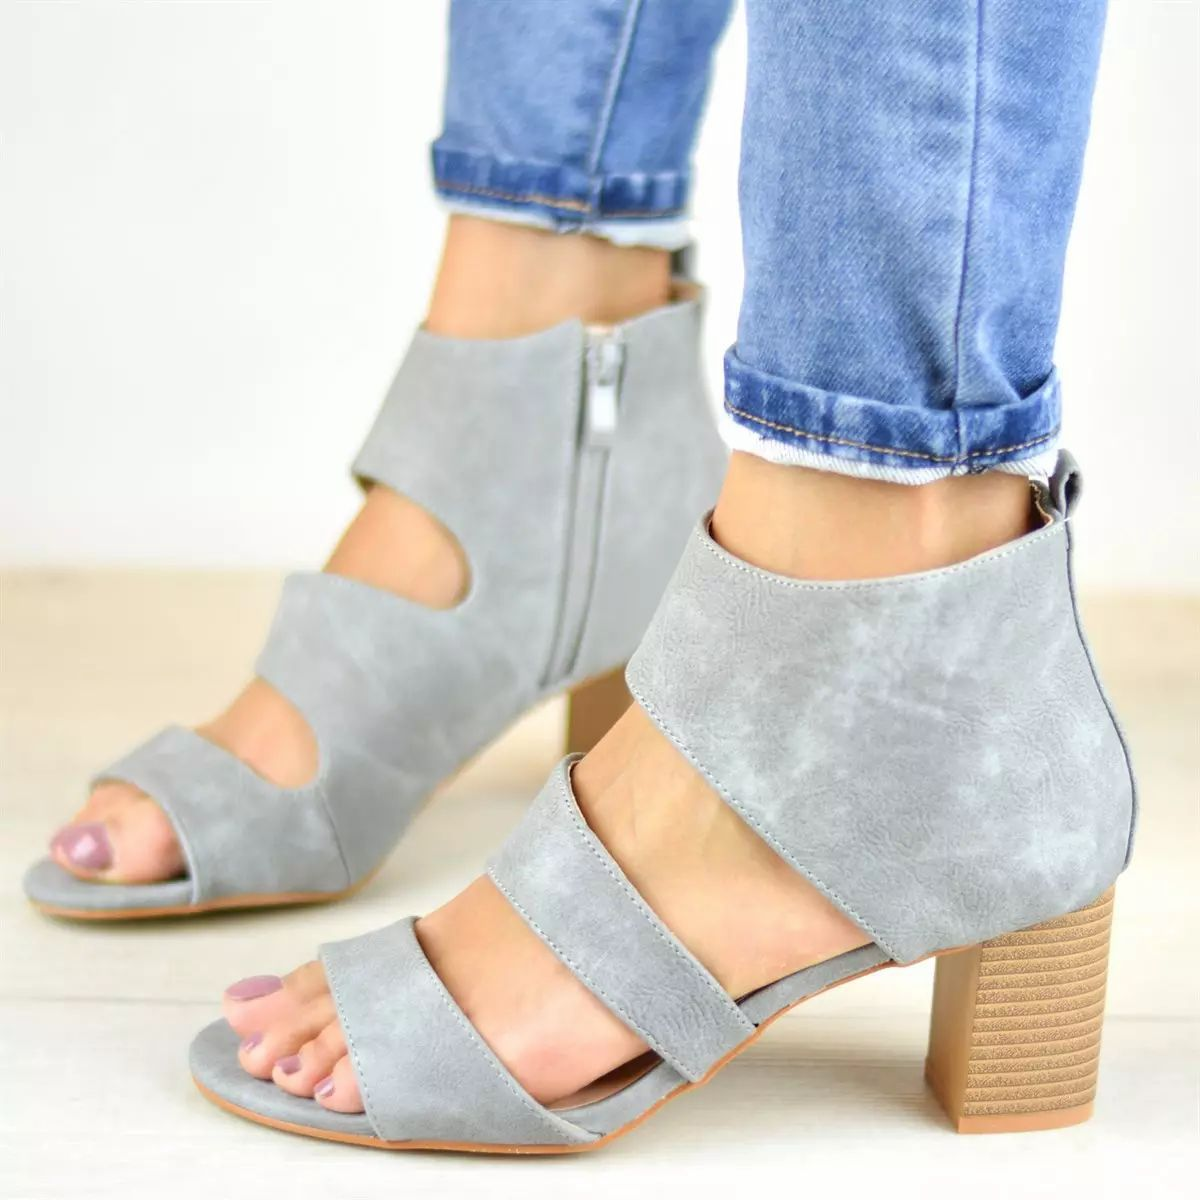 5704eb5d8628 ad Grab a pair of these cute chunky heel sandals. Pair them with a skirt or  jeans! Only  24.99.  sixsistersstyle  sandals  summerfashion